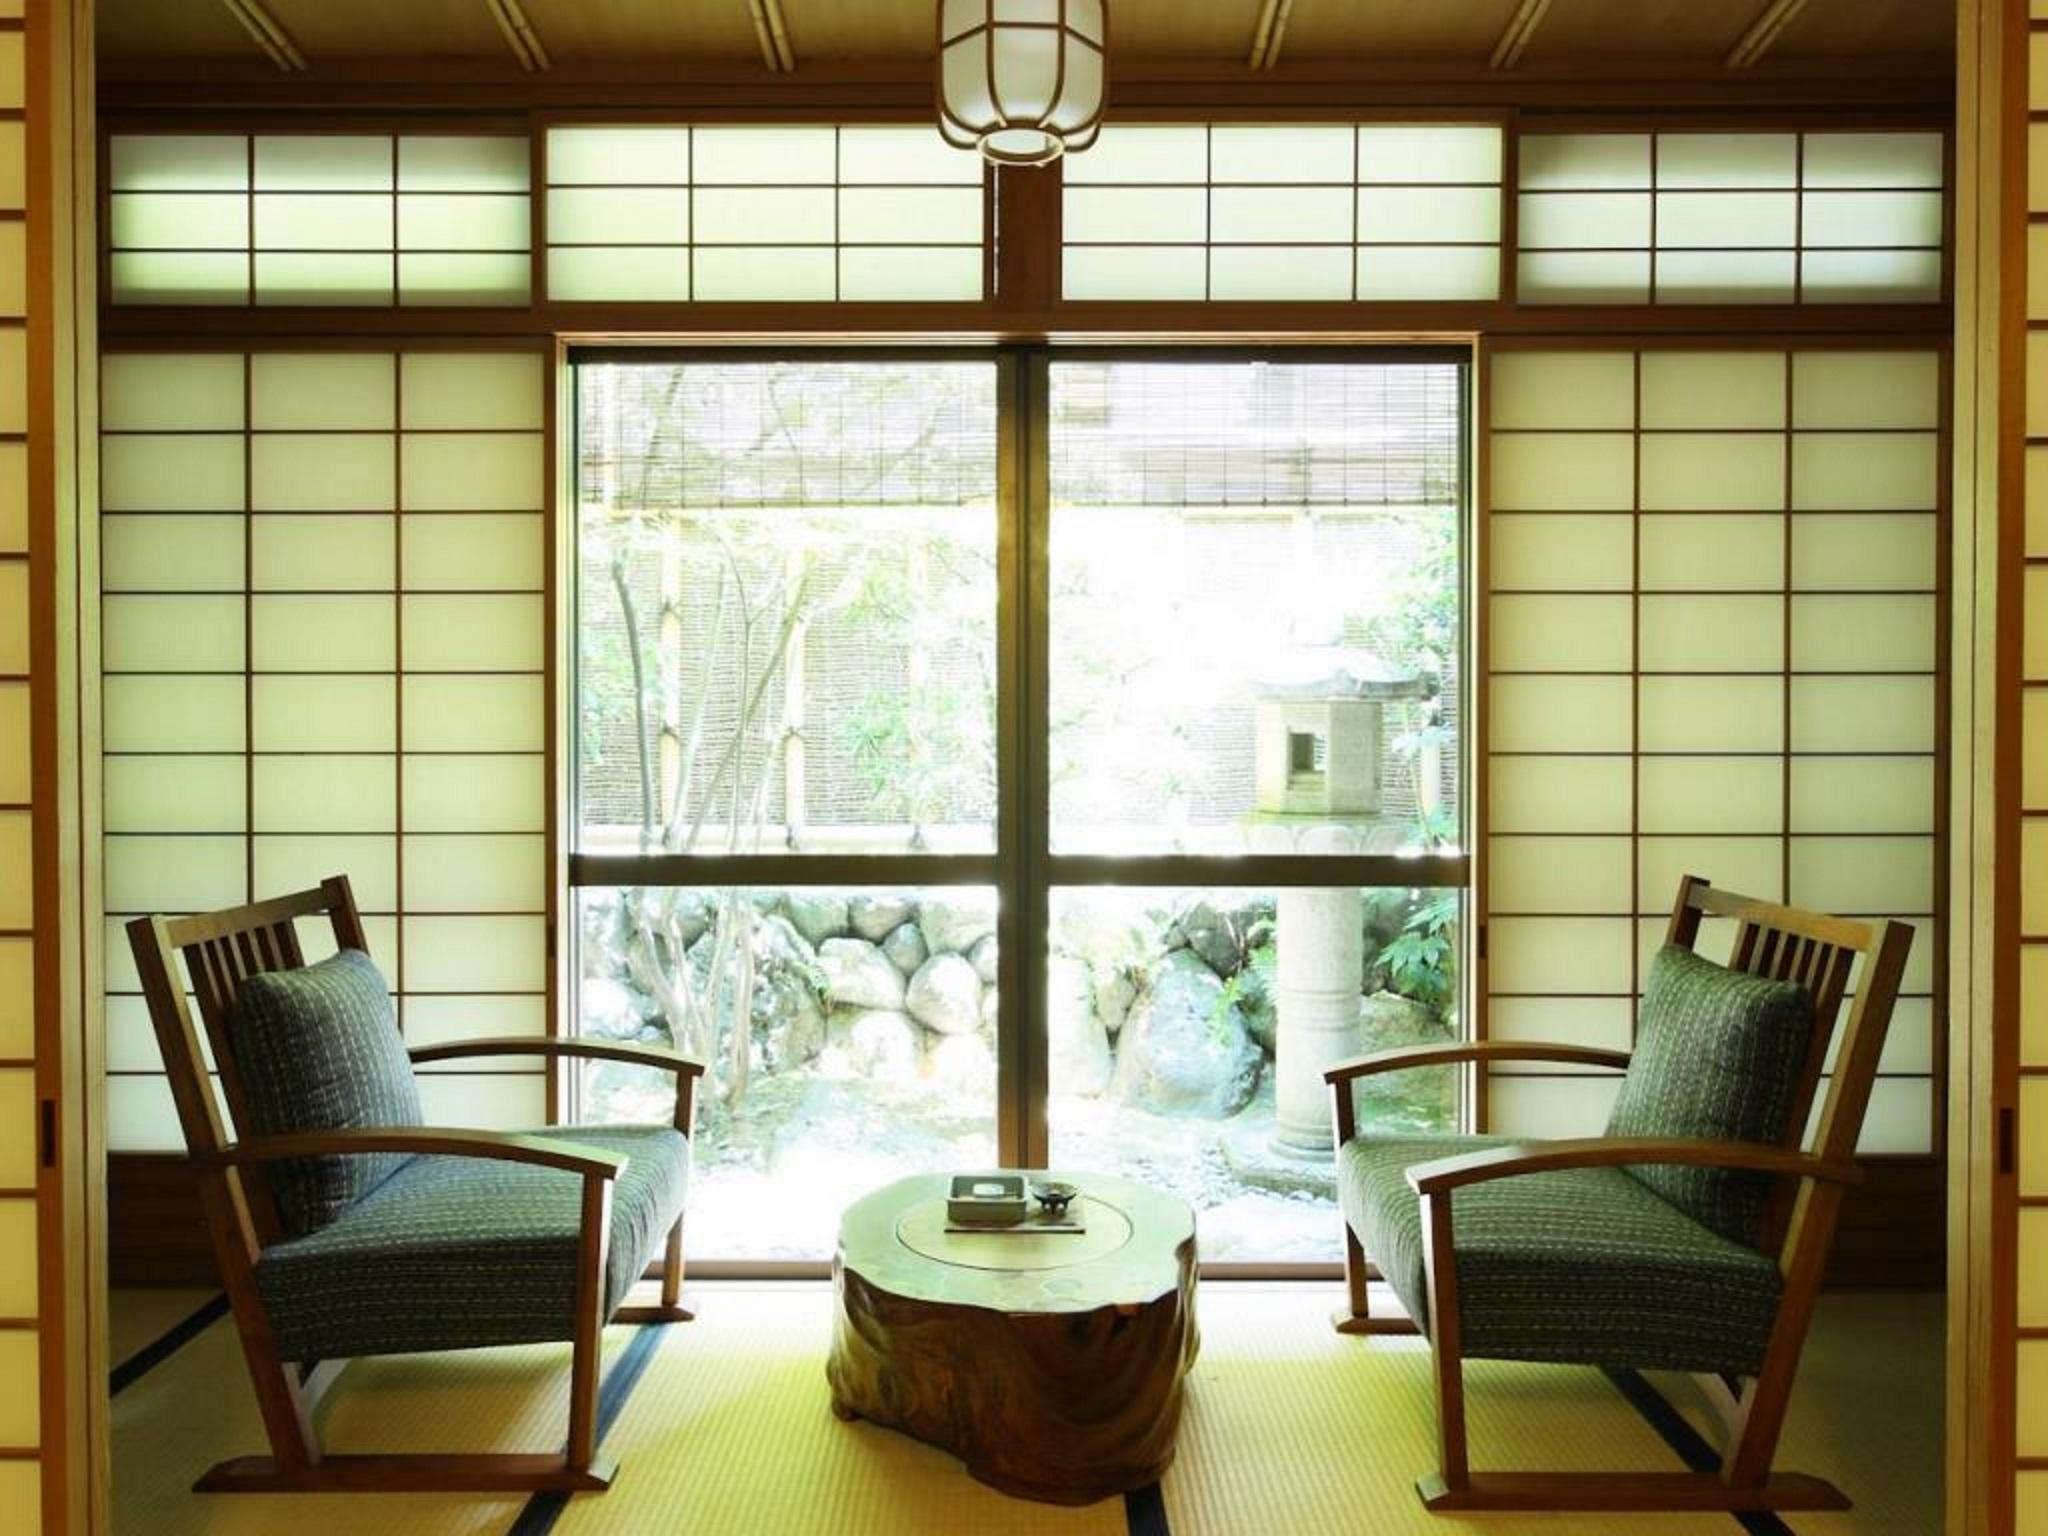 豪華日式客房 - 可住3人 (Deluxe Japanese Style Room for 3 People)